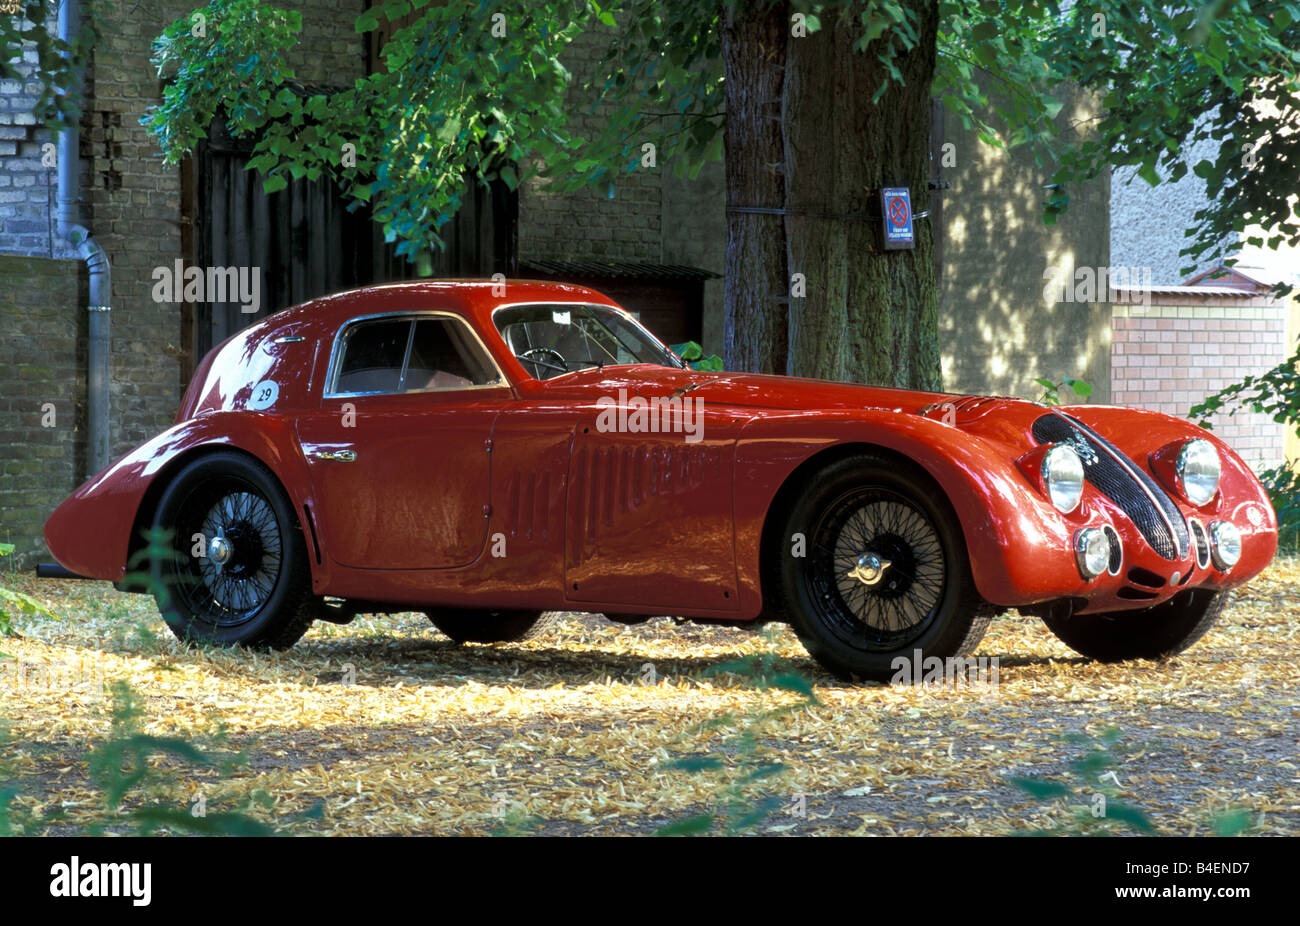 Car, Alfa Romeo 8C 2900 B Touring Le Mans, Vintage Car, Model Year 1938,  1930s, Thirties, Red, Standing, Diagonal Front, Front V